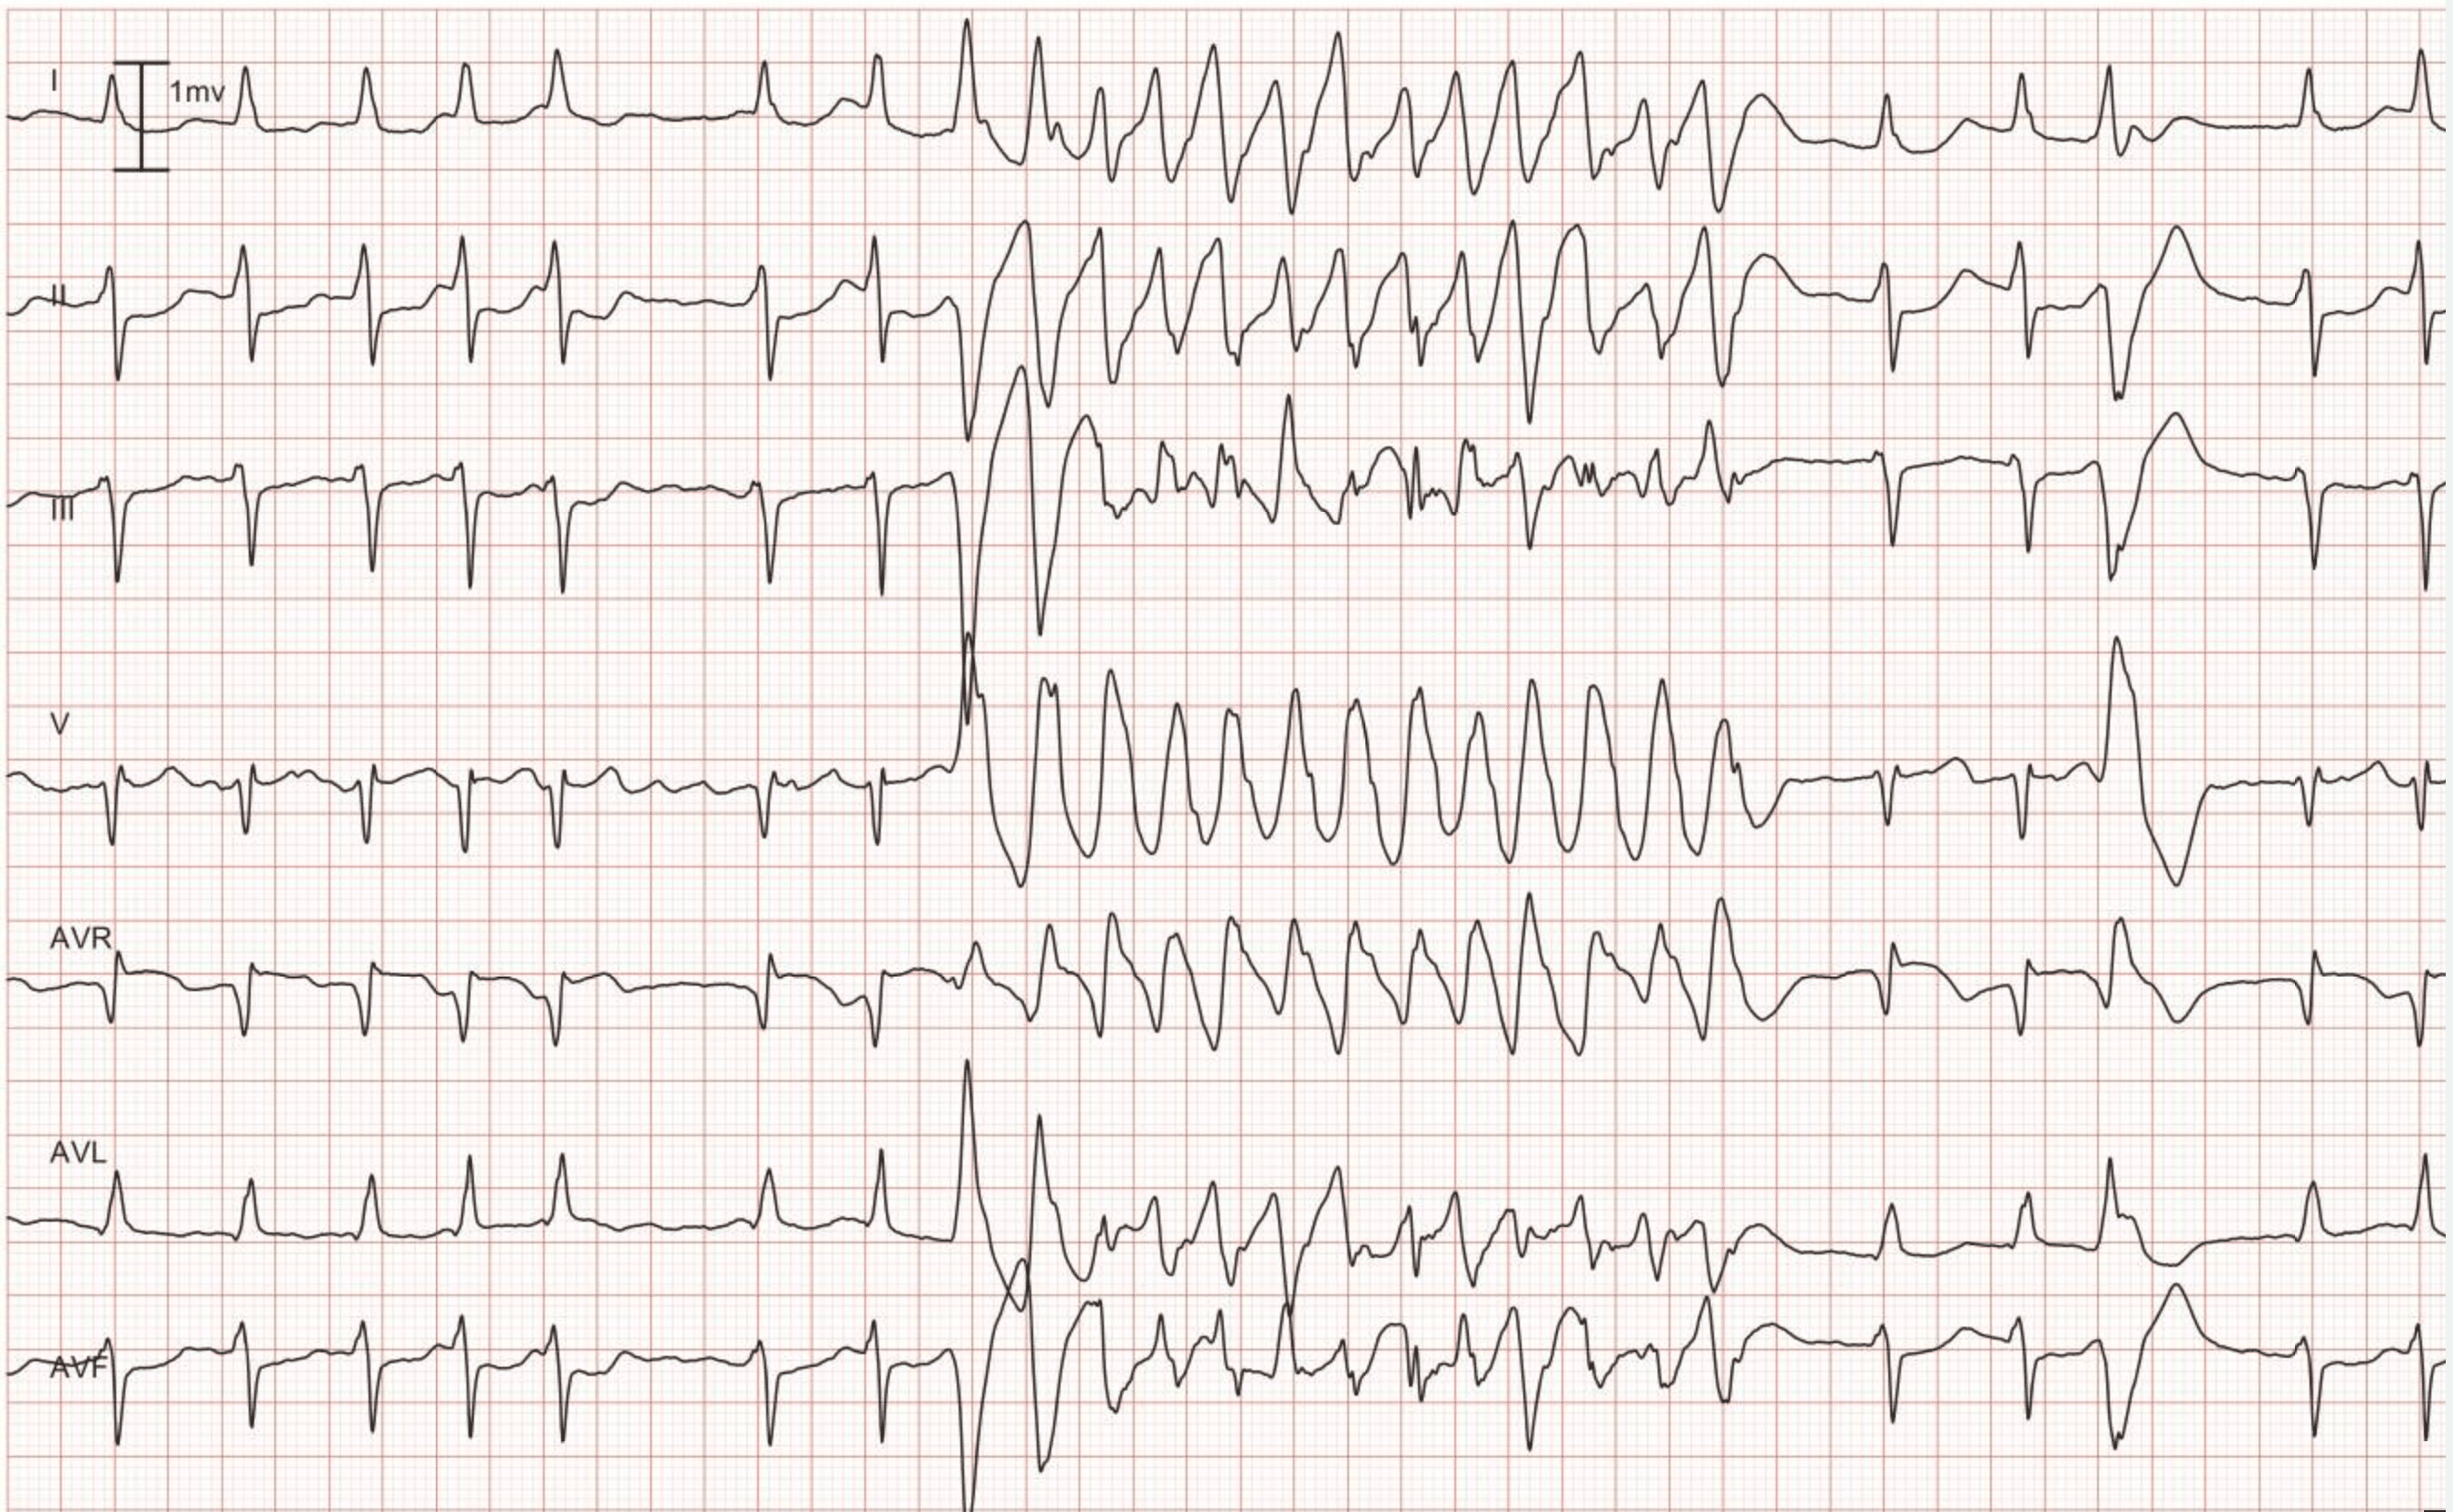 Atrial fibrillation: ECG, classification, causes, risk factors and management